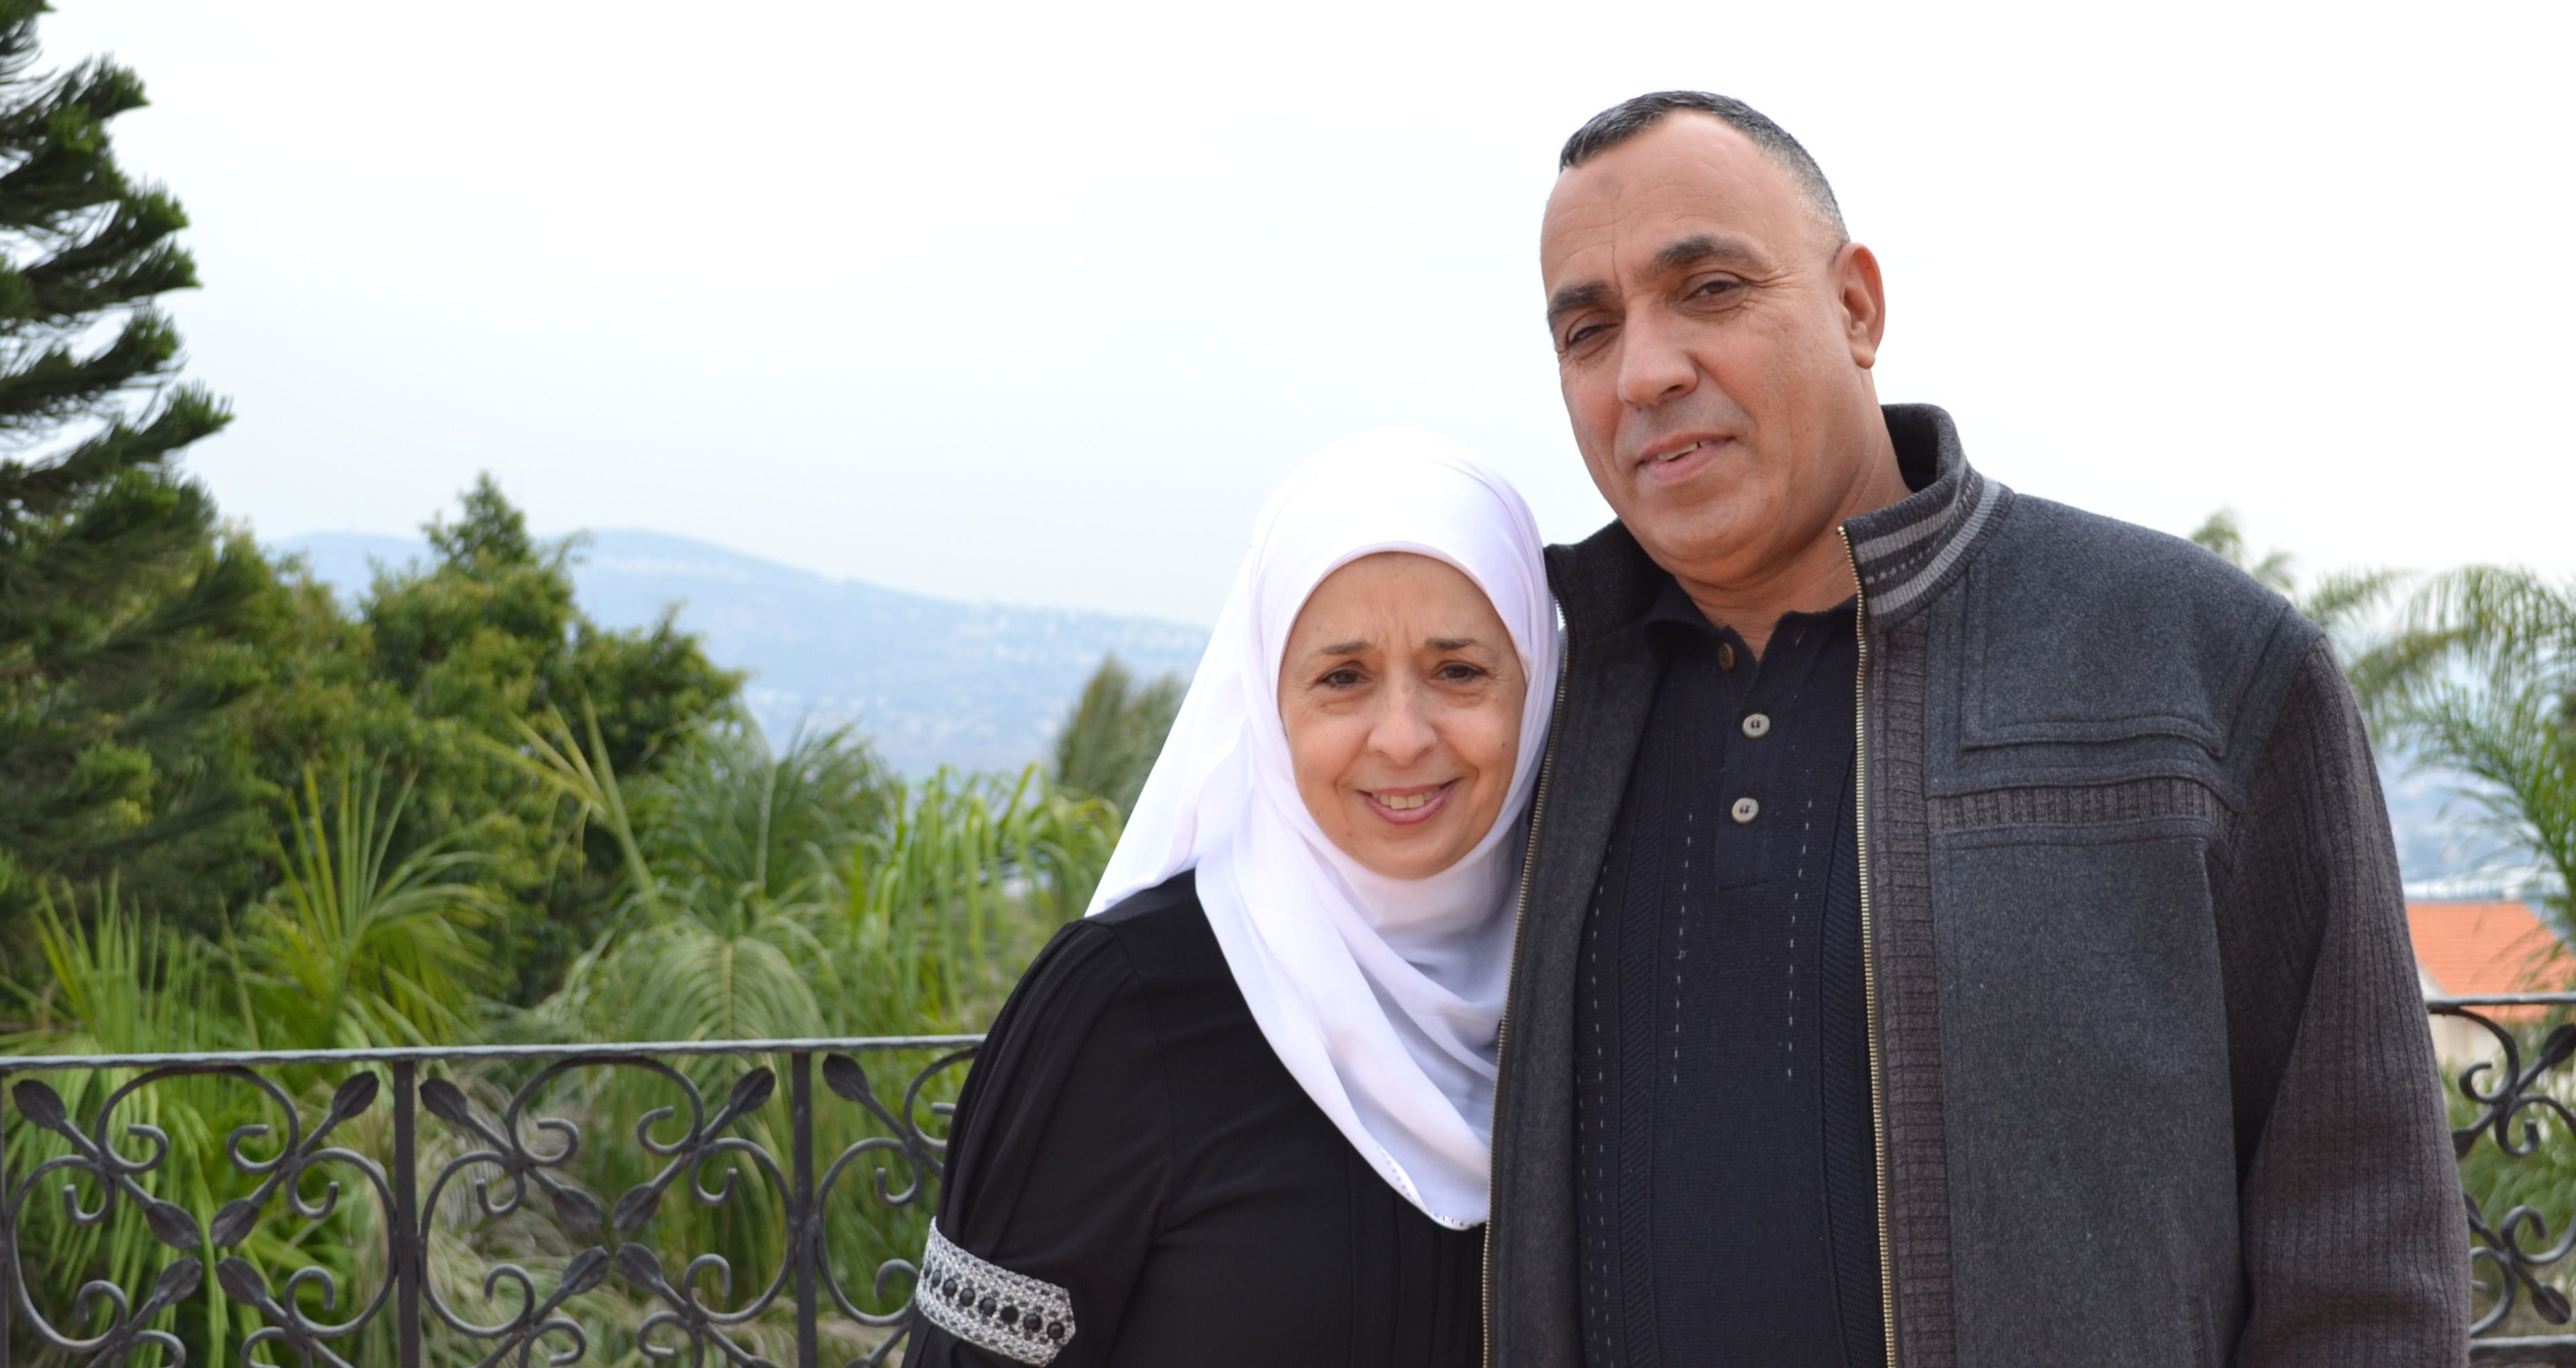 Iman and Riad Sharary won the right to build in Afula but a Nazareth judge invalidated their bid this week.